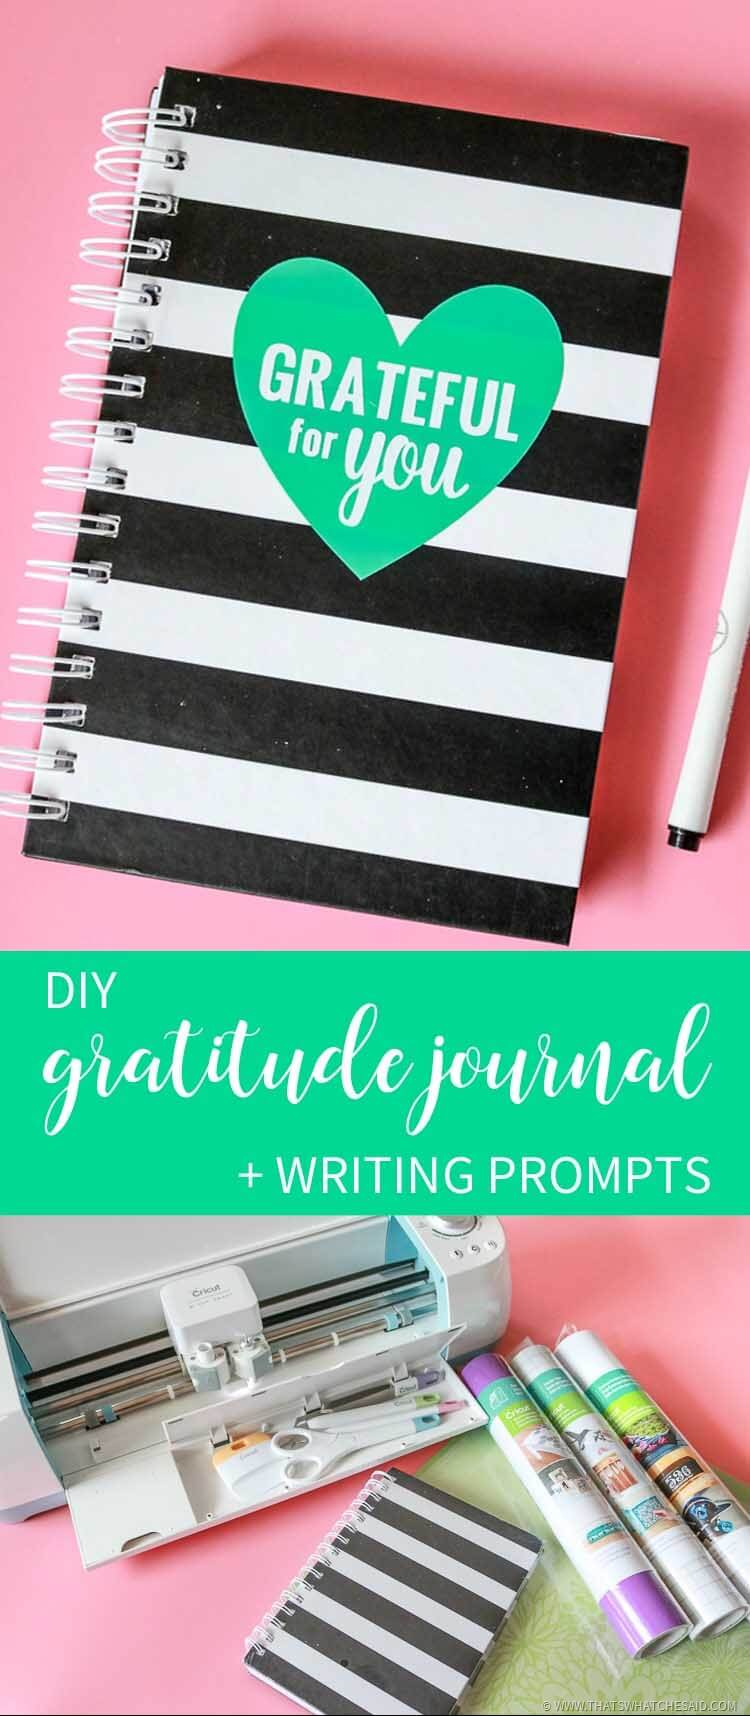 Gratitude Journal Writing Prompts